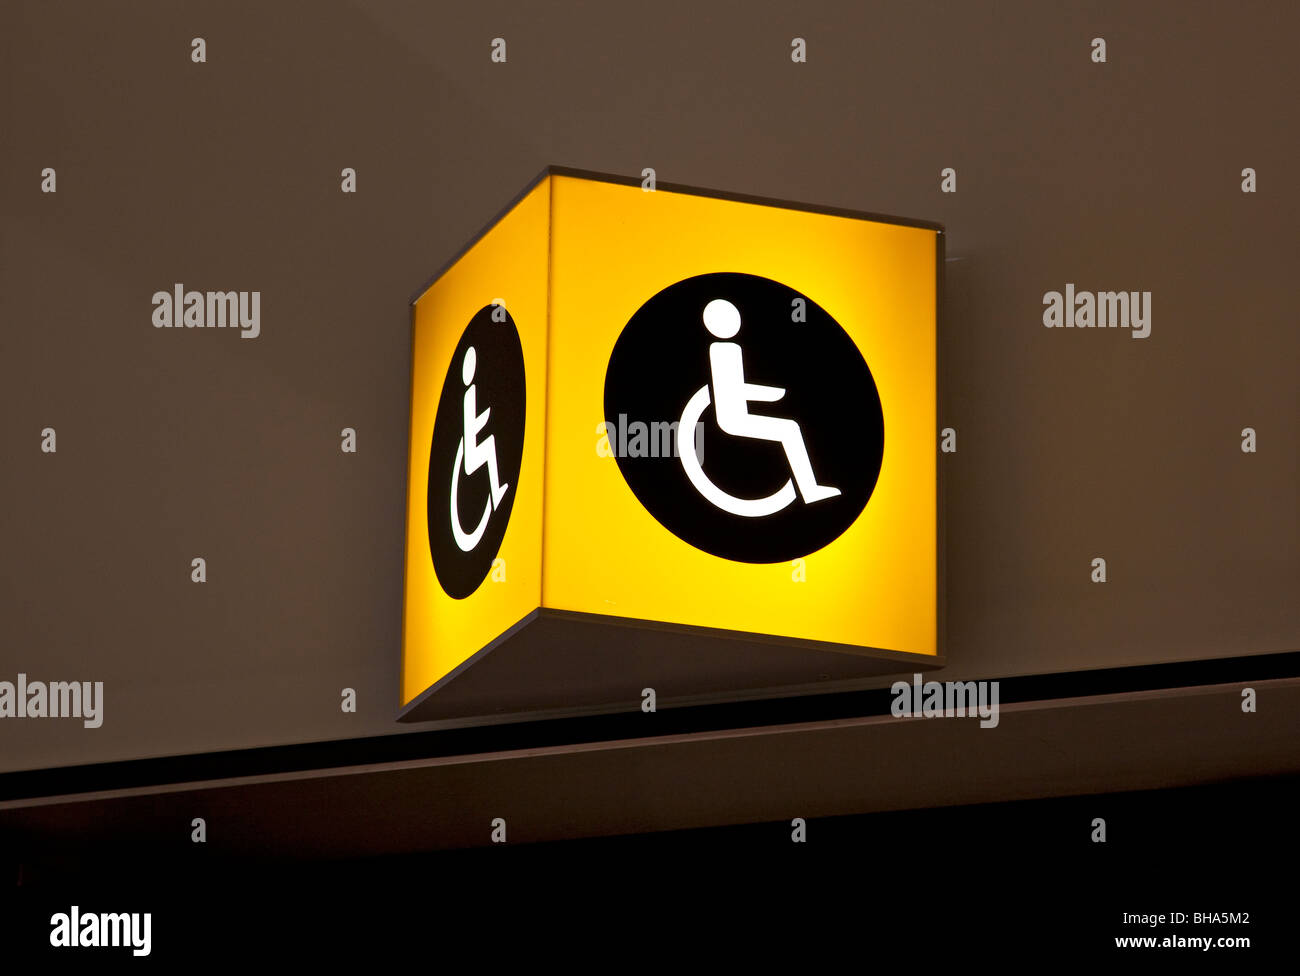 Disabled toilet sign, Terminal 5, Heathrow airport, London, England - Stock Image